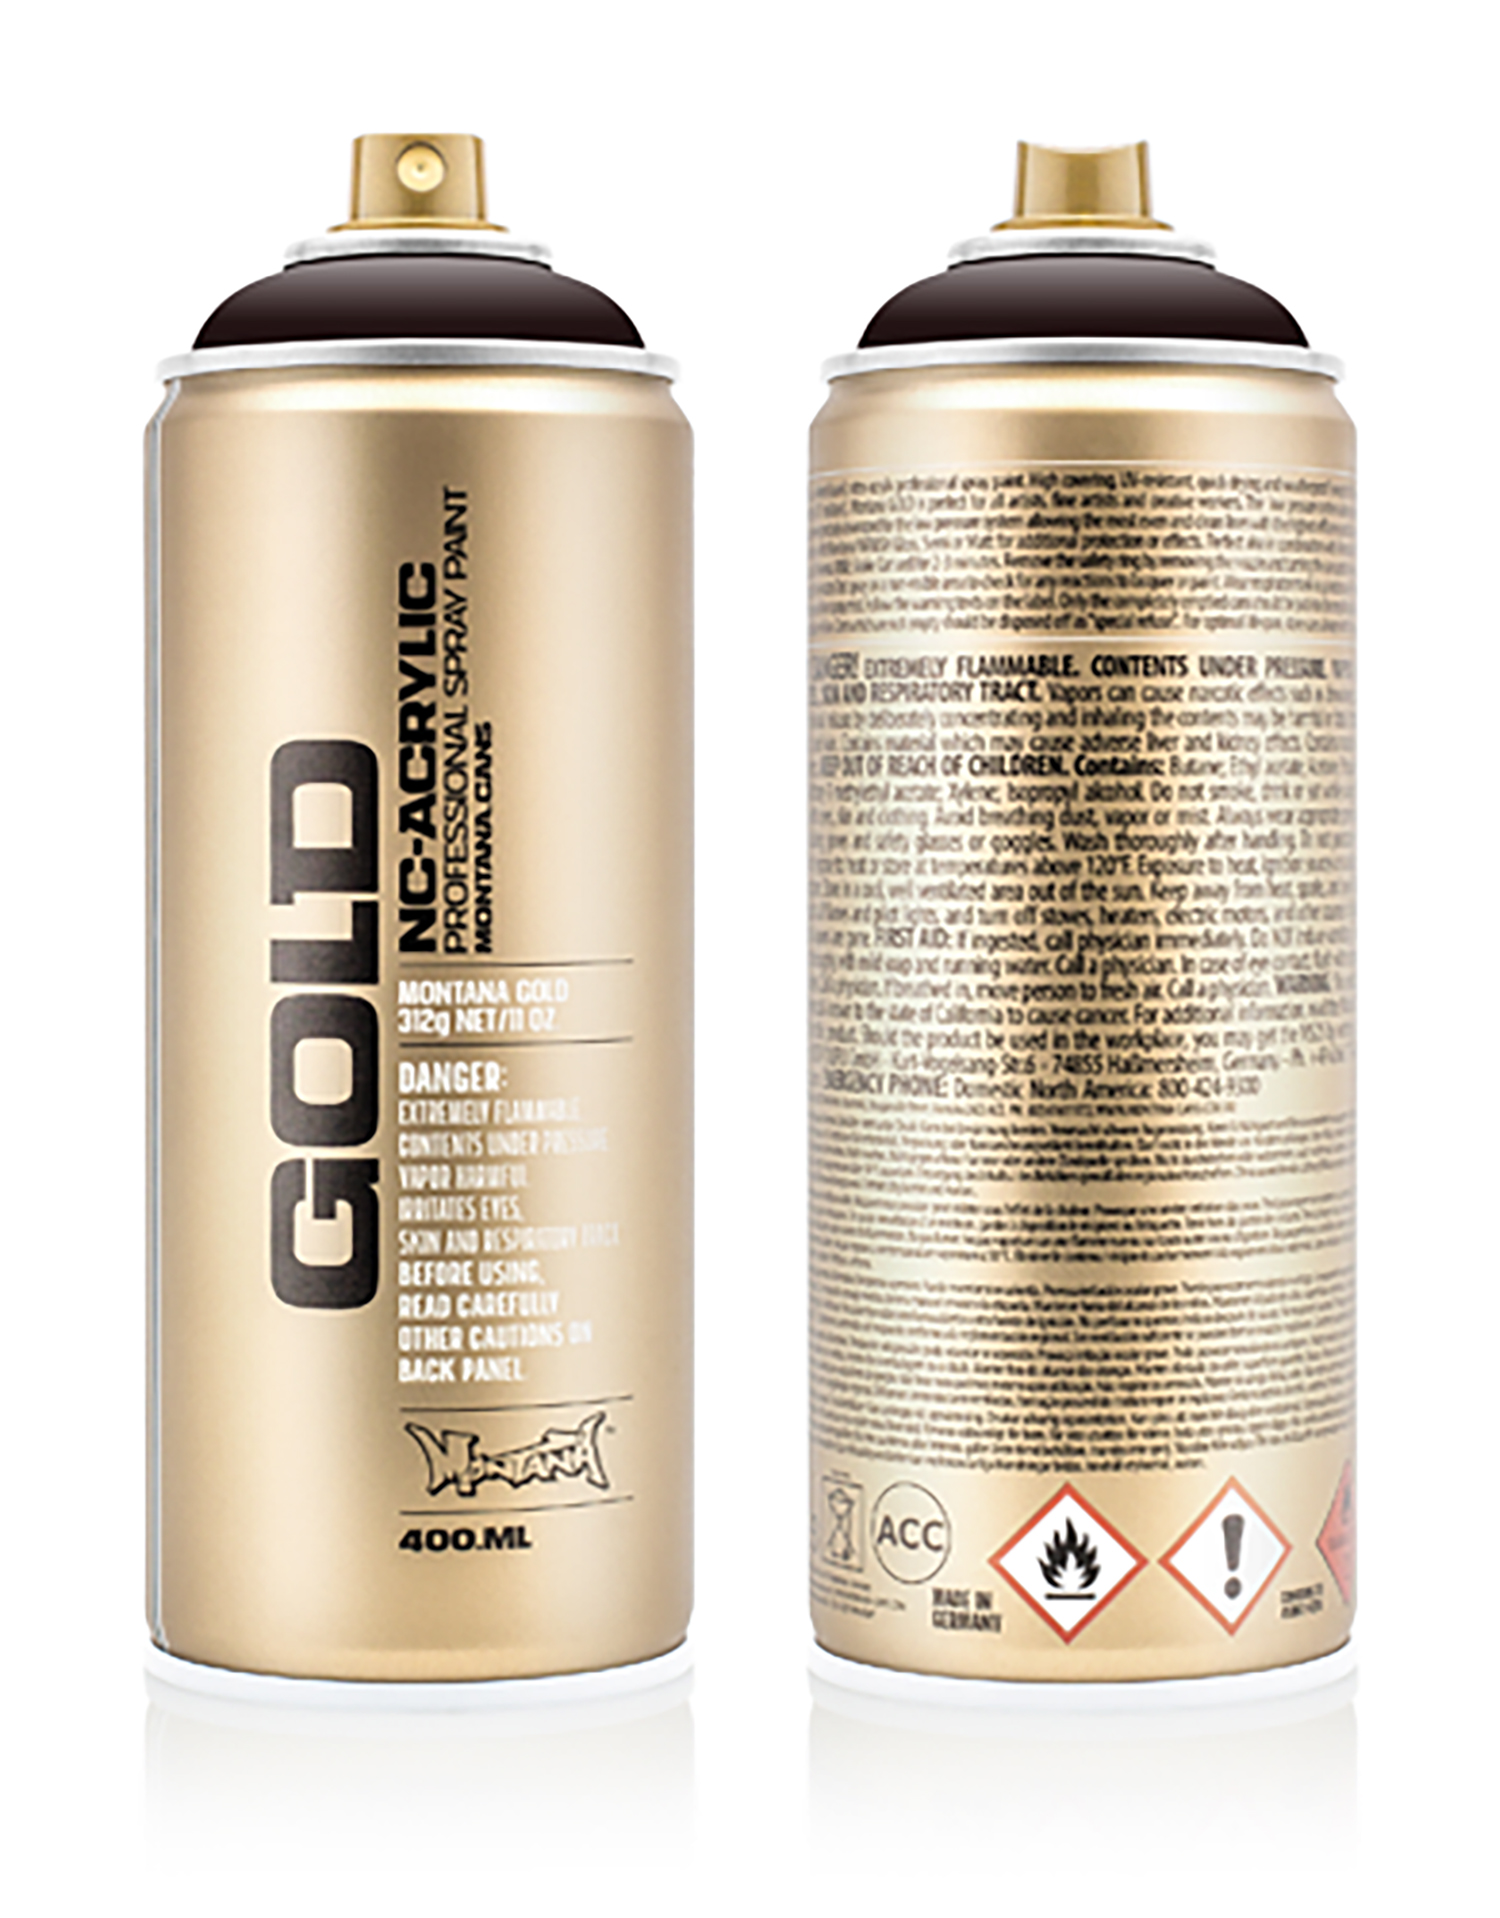 MONTANA-GOLD-SPRAY-400ML-G-3085